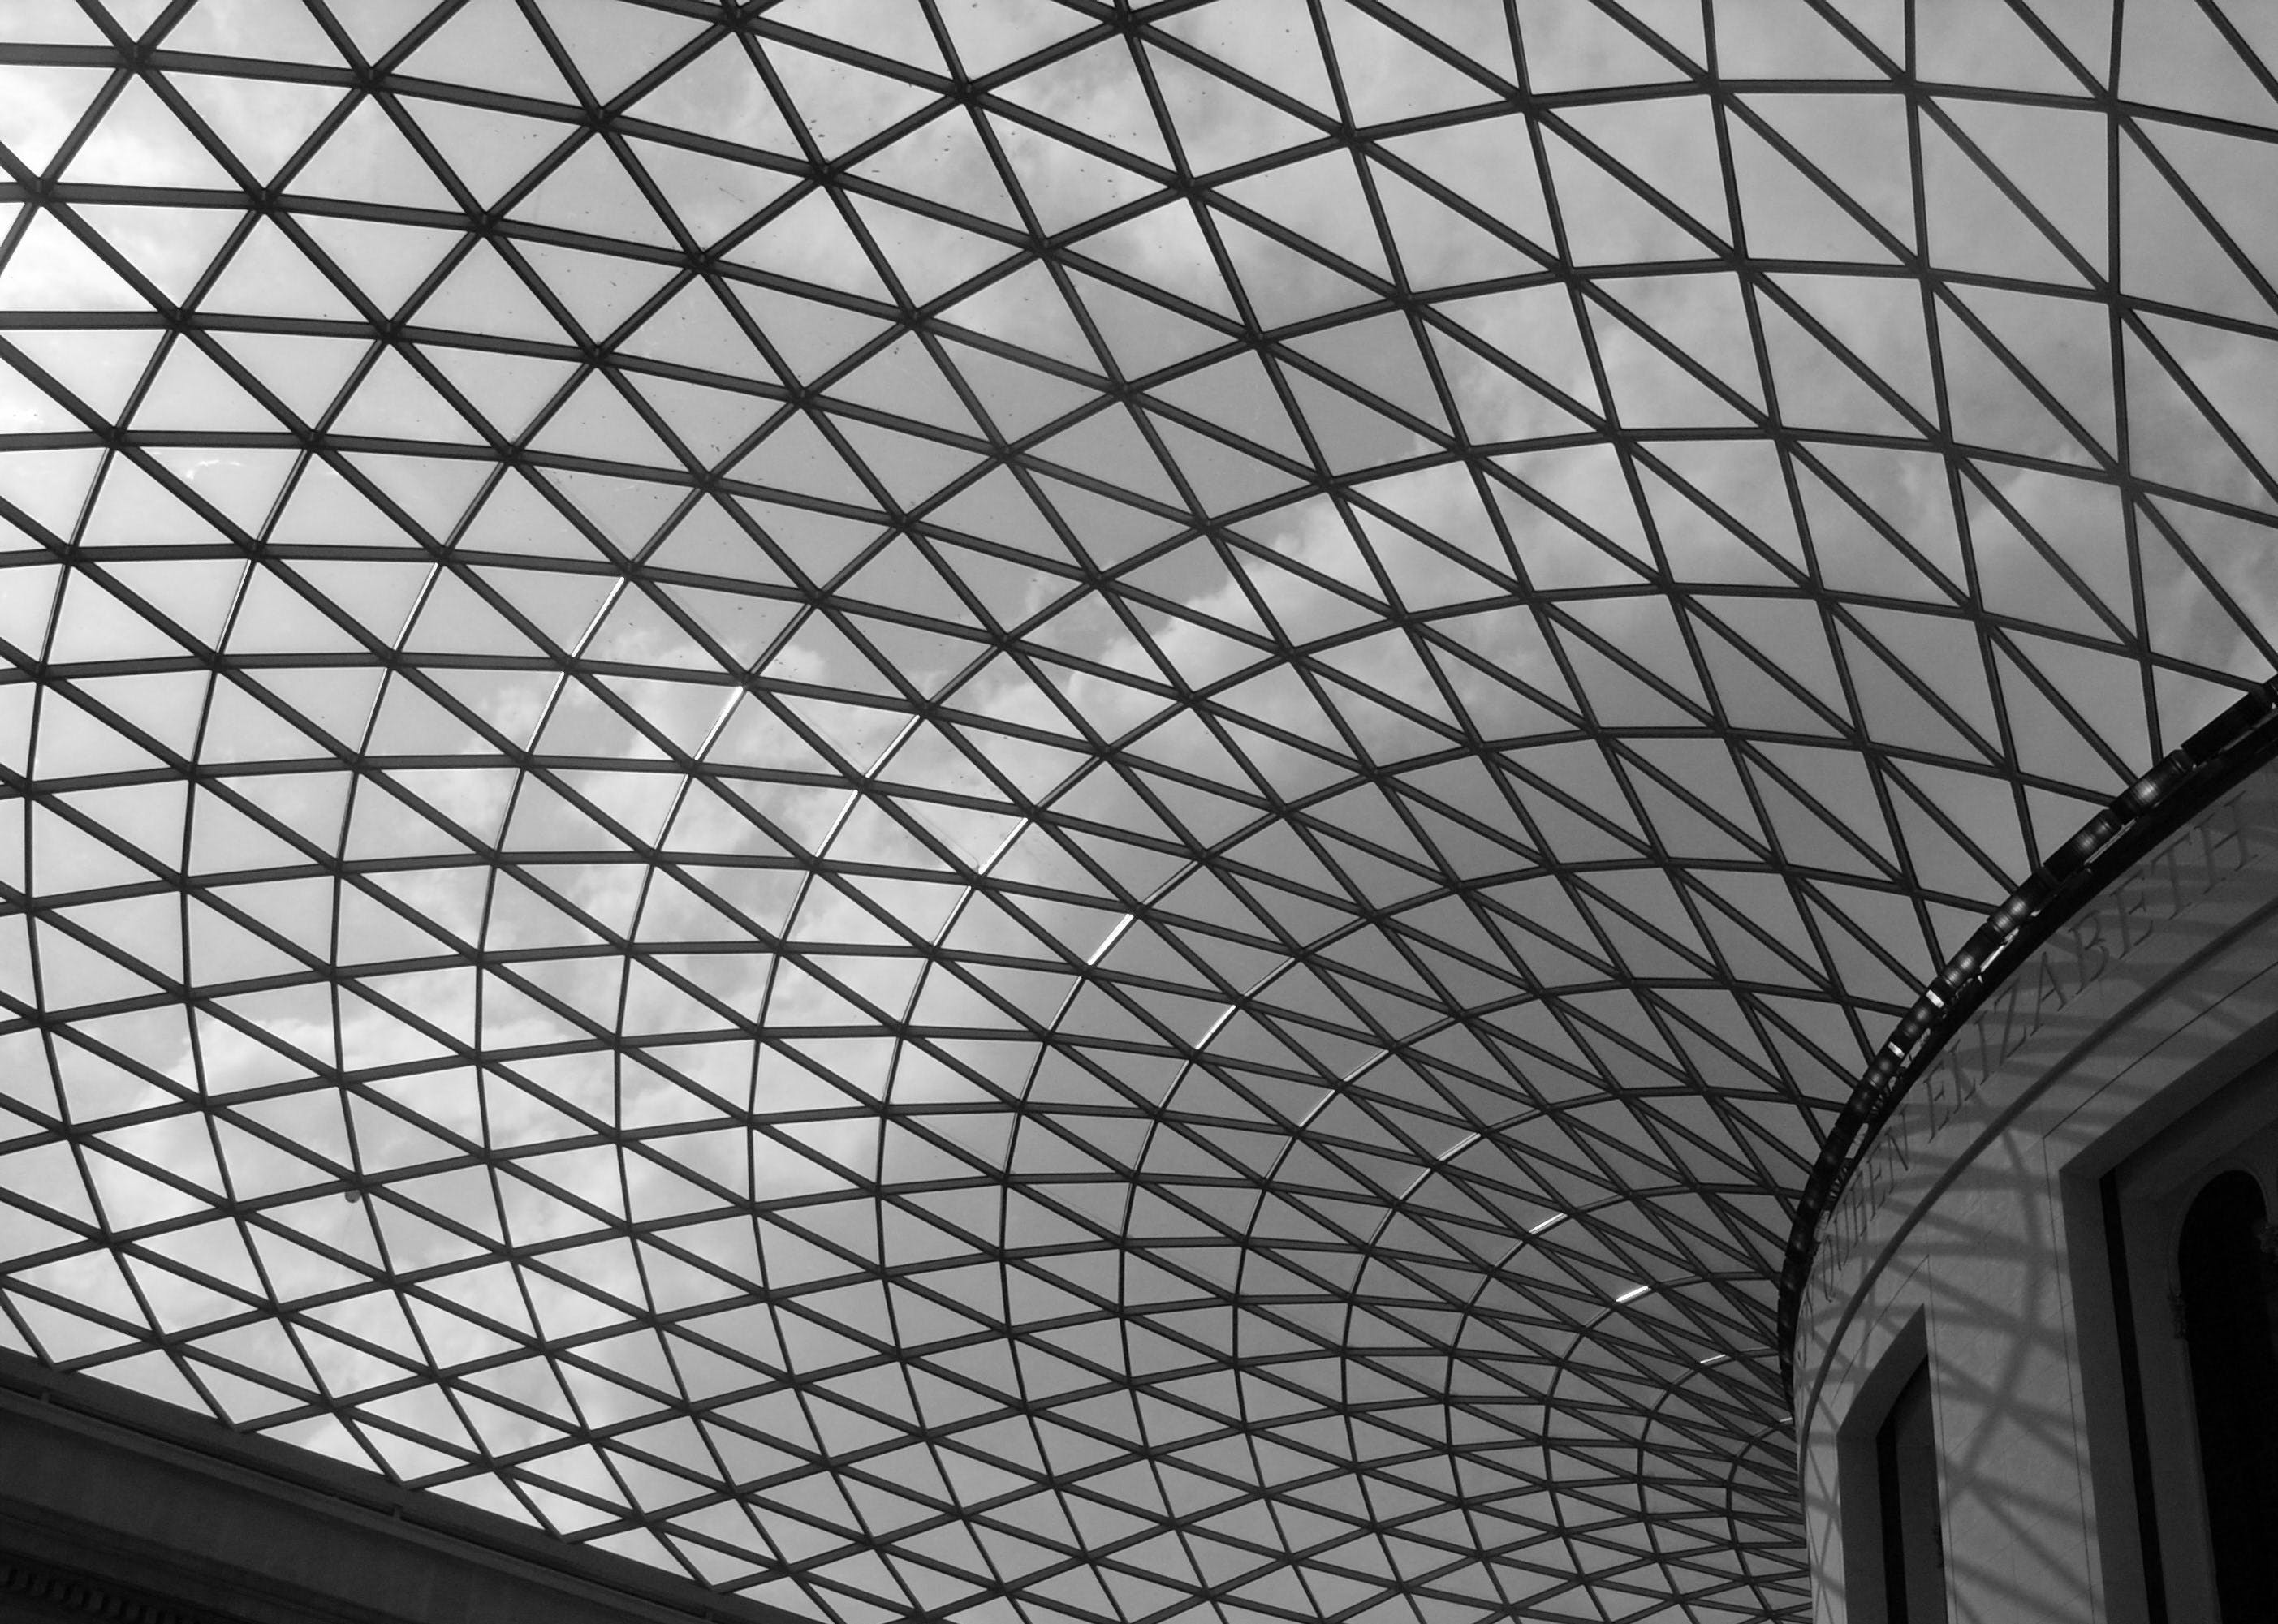 Gray Scale Photo of Glass Dome Building